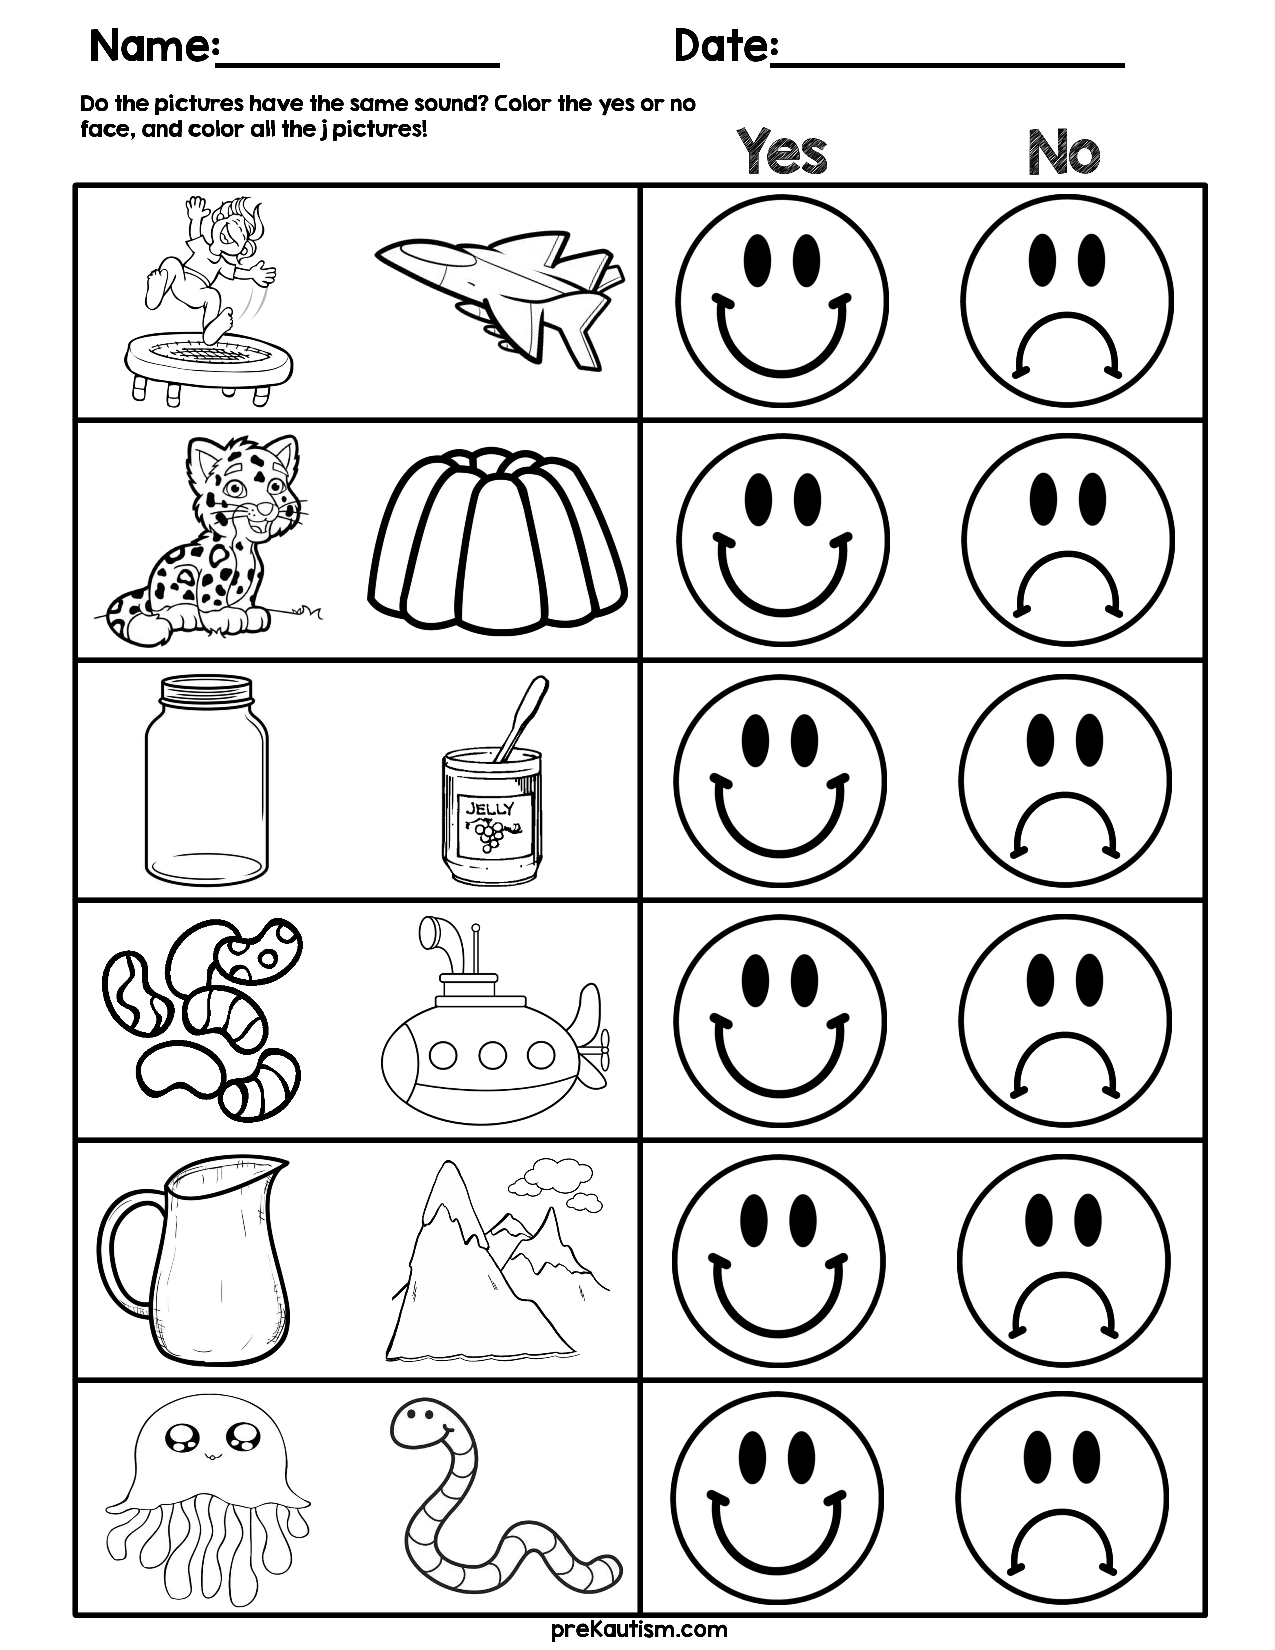 Consonant Sound Match Worksheets Initial sounds